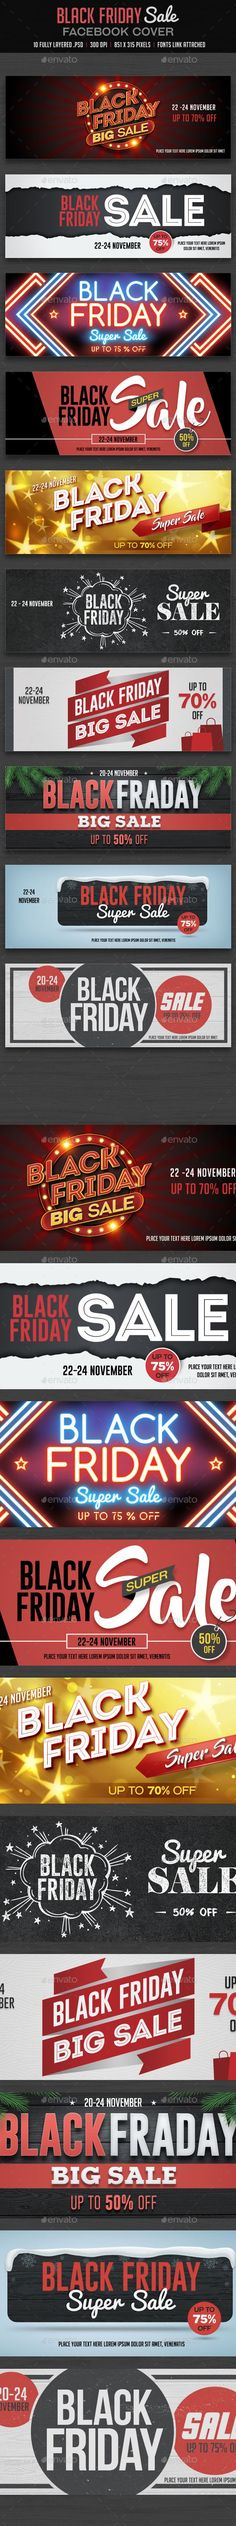 Black Friday Facebook Cover  — PSD Template #advertising #851x315 • Download ➝ https://graphicriver.net/item/black-friday-facebook-cover/18393857?ref=pxcr